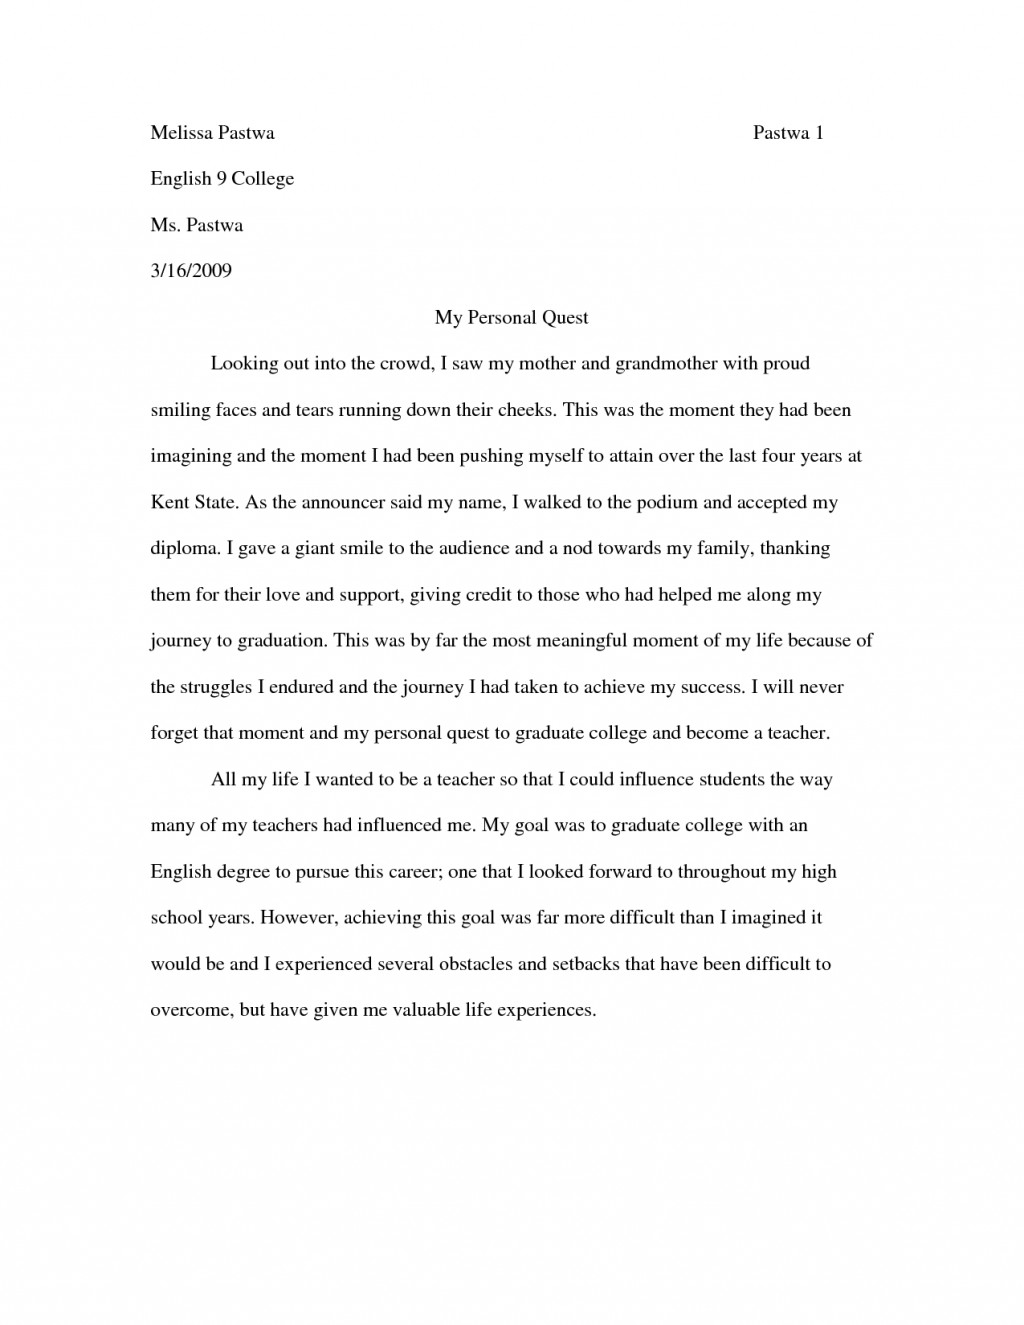 014 Essay Examples For High School Personal Narrative Writings And Essays Simple Example With Re Middle Unique Statement Sample 5 Paragraph Argumentative Tagalog Large